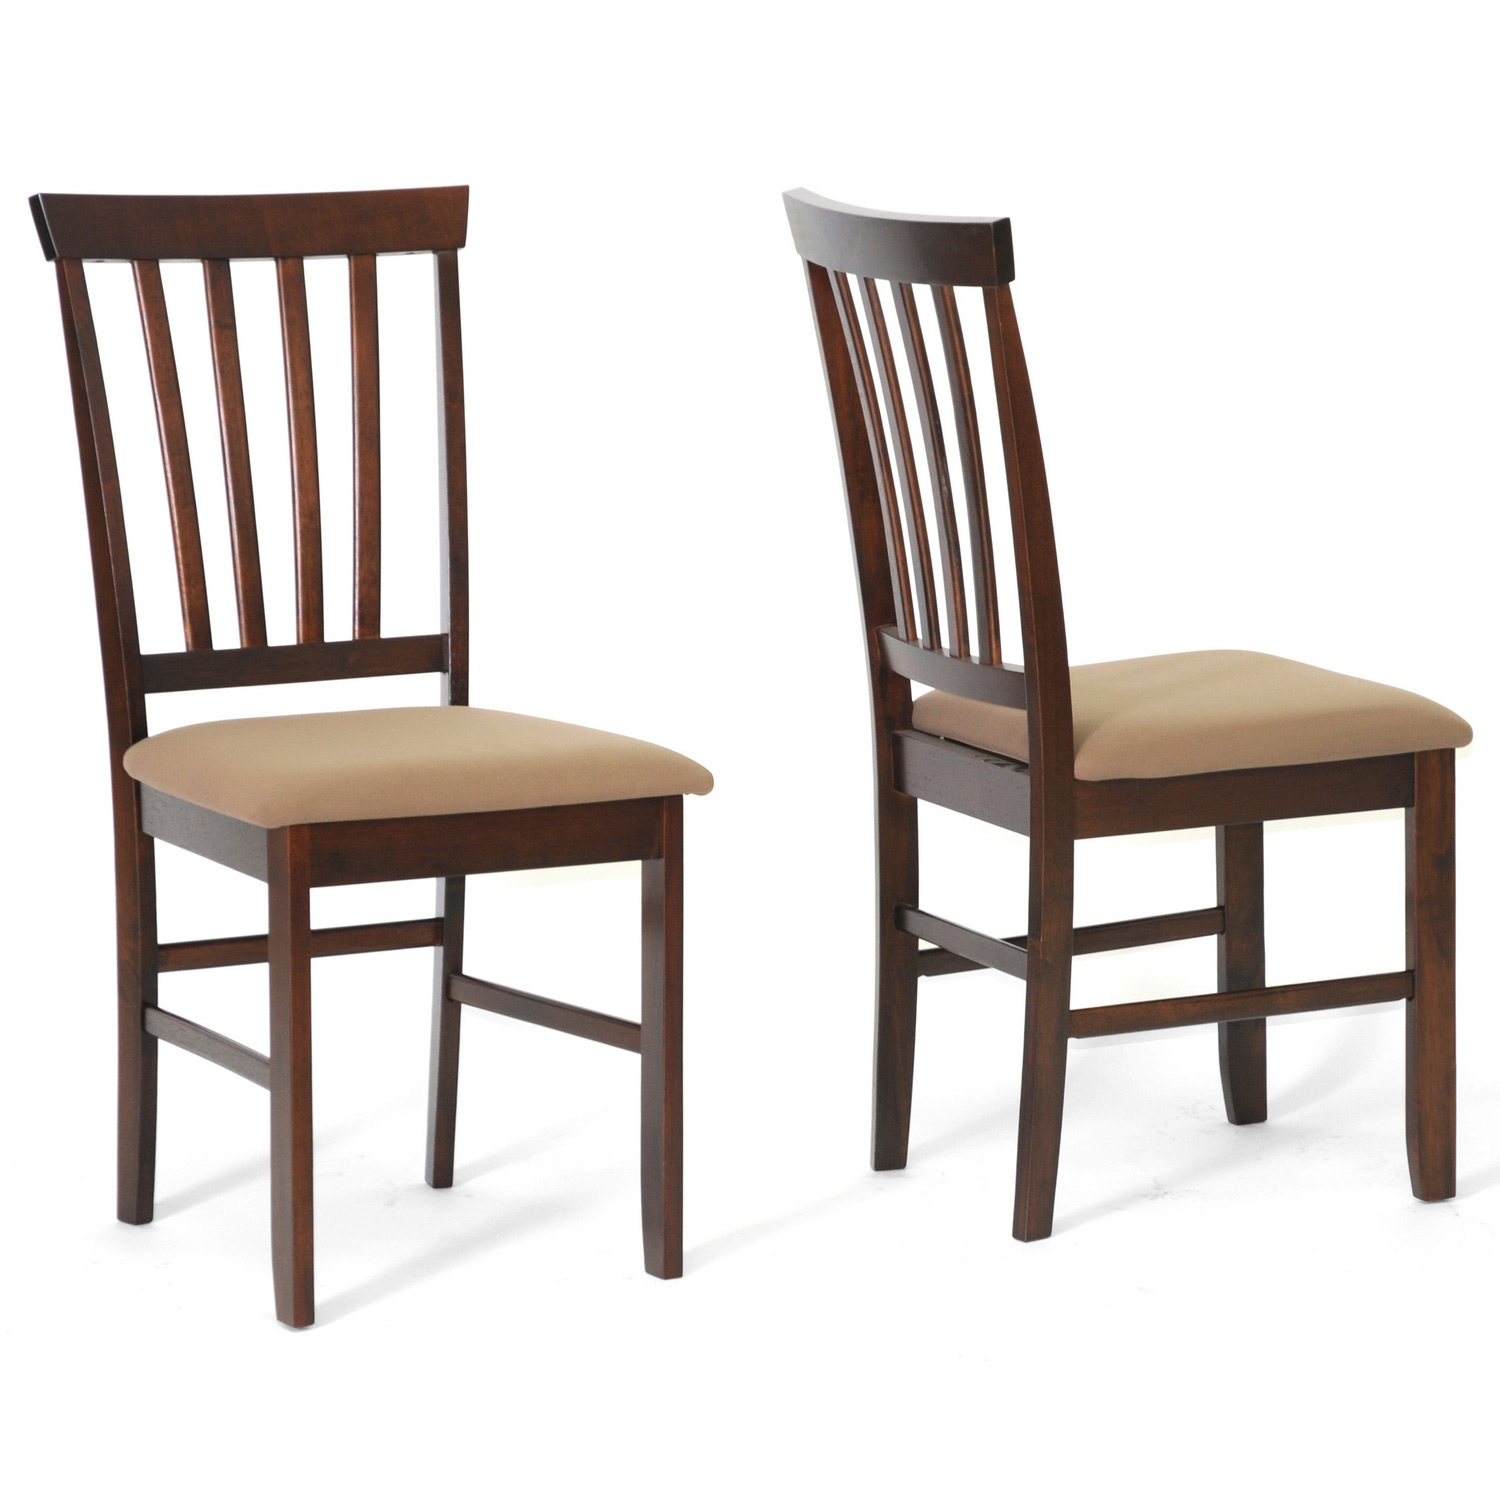 Tiffany brown wood modern dining chairs set of by